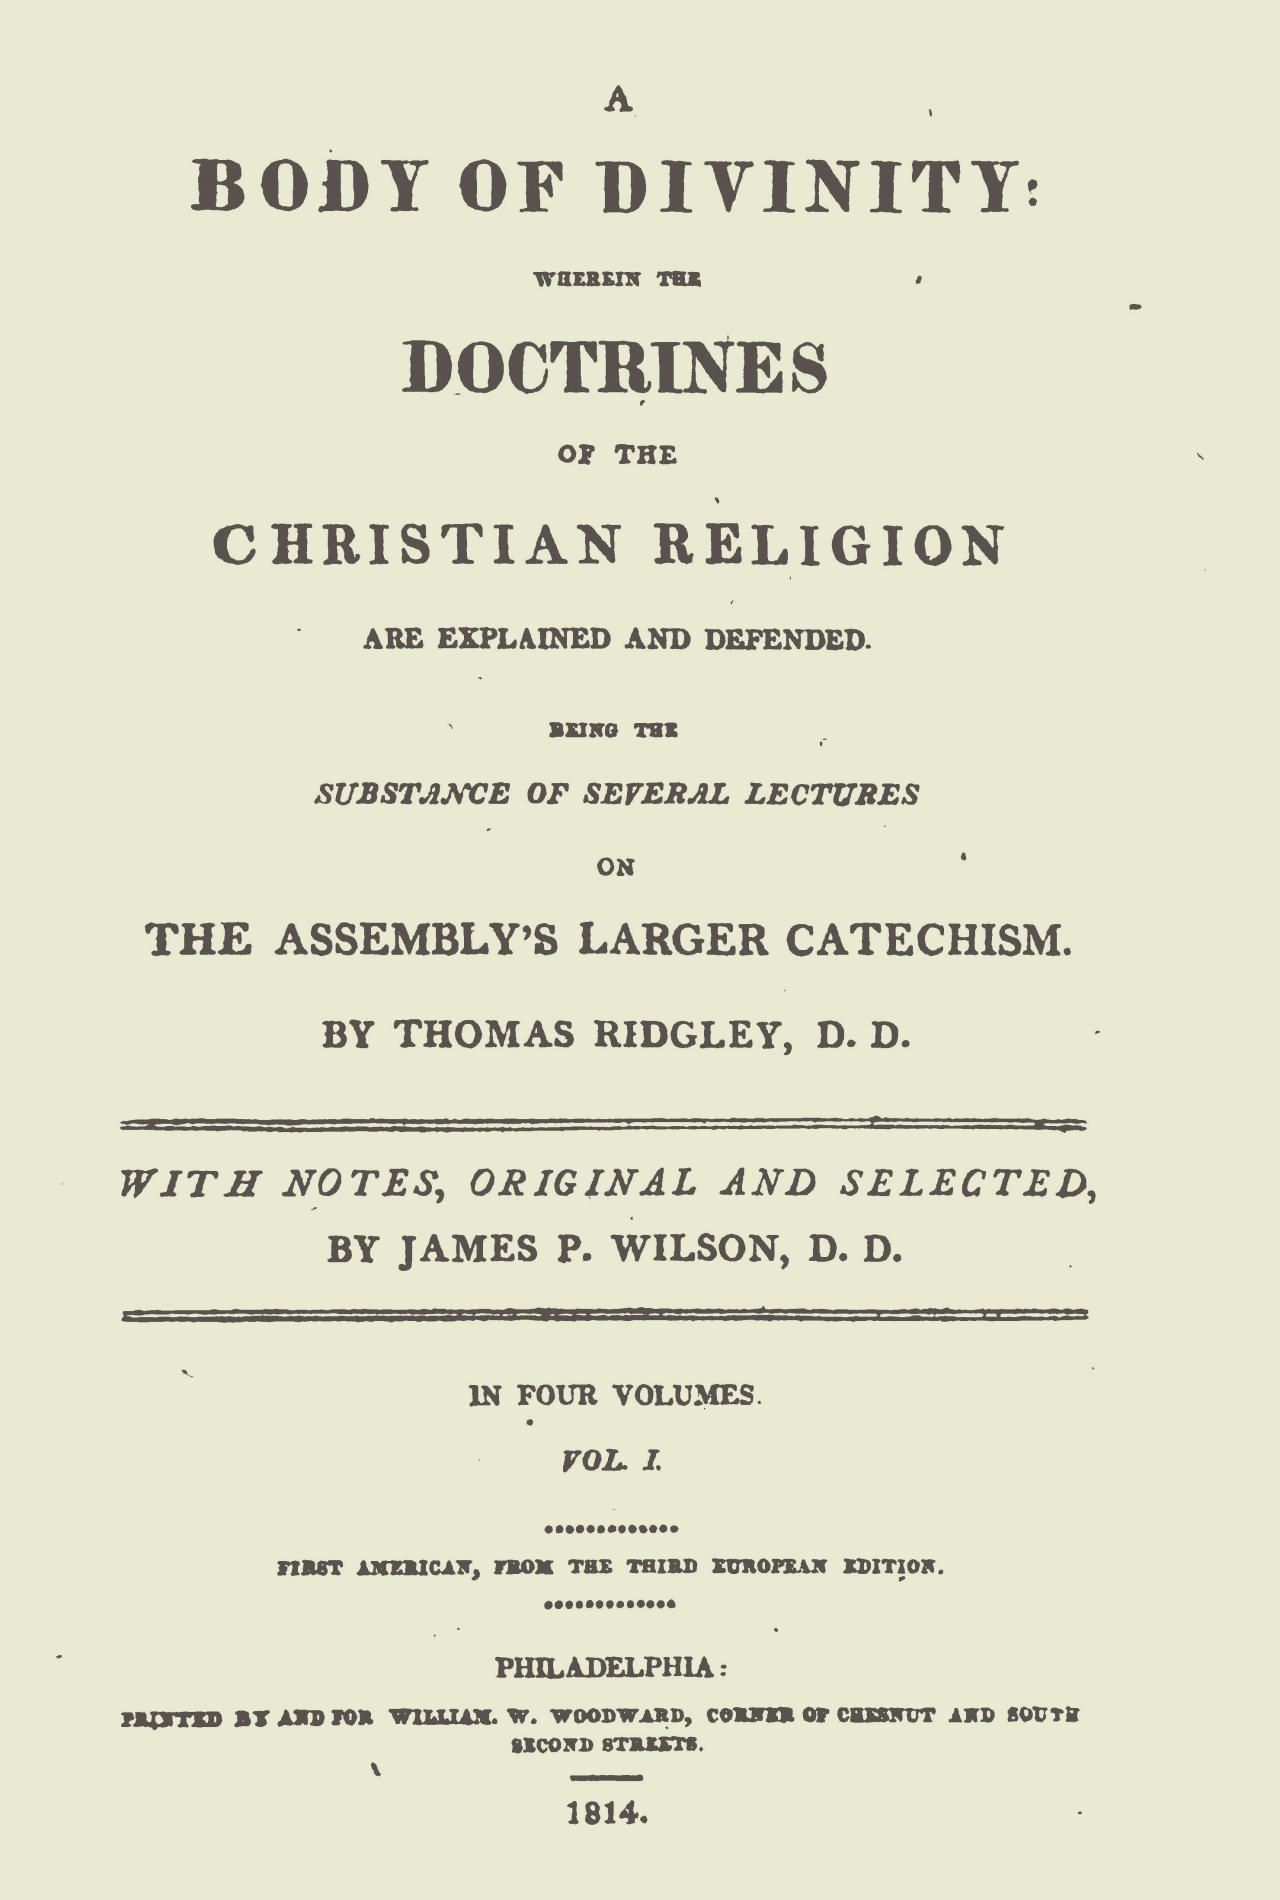 Wilson, Sr., James Patriot, Notes on Ridgley's Body of Divinity, Vol. 1 Title Page.jpg